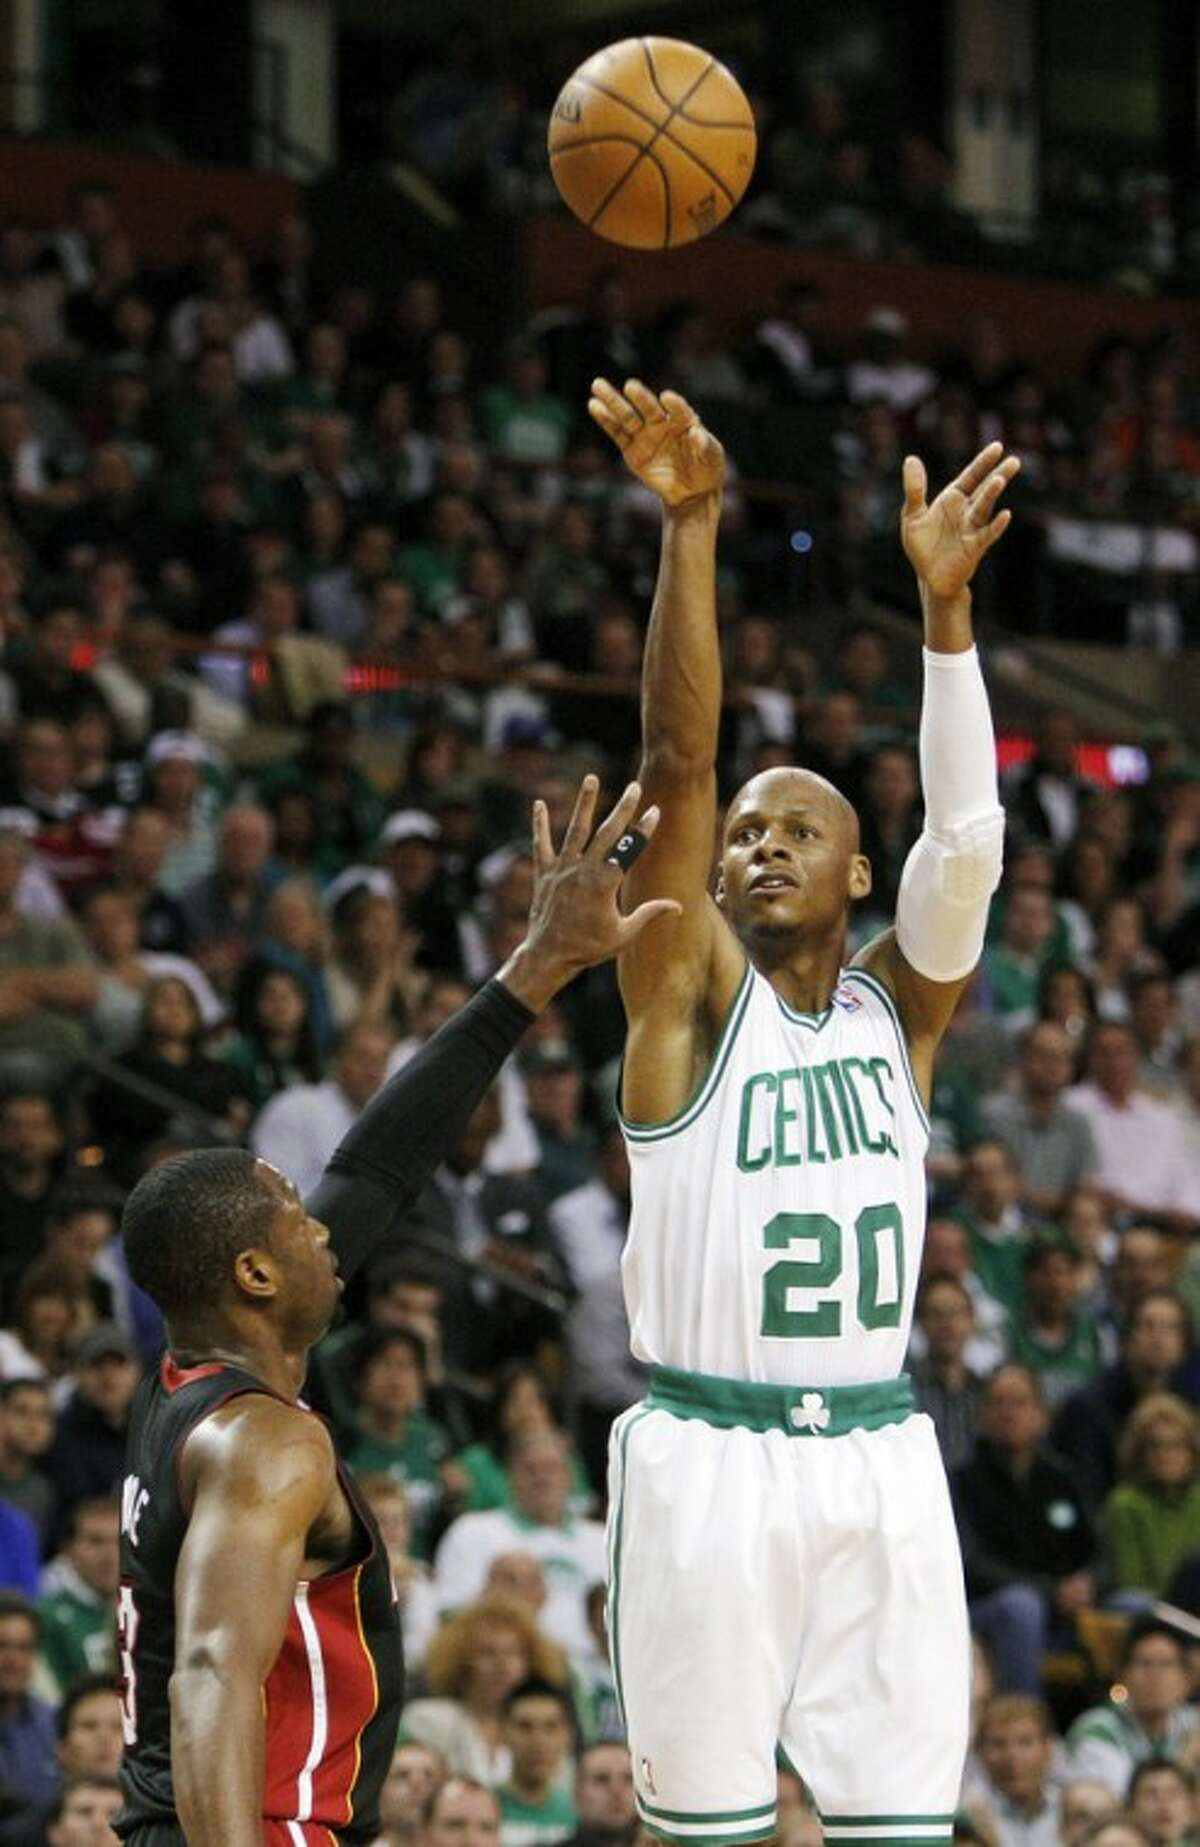 FILE - In this June 3, 2012, file photo, Boston Celtics guard Ray Allen (20) shoots a three-point basket over Miami Heat guard Dwyane Wade (3) during the first quarter of Game 4 in their NBA basketball Eastern Conference finals playoff series in Boston. Allen told the Heat on Friday night, July 6, 2012, that he has decided to leave the Celtics and join up with the reigning NBA champions. (AP Photo/Elise Amendola, File)